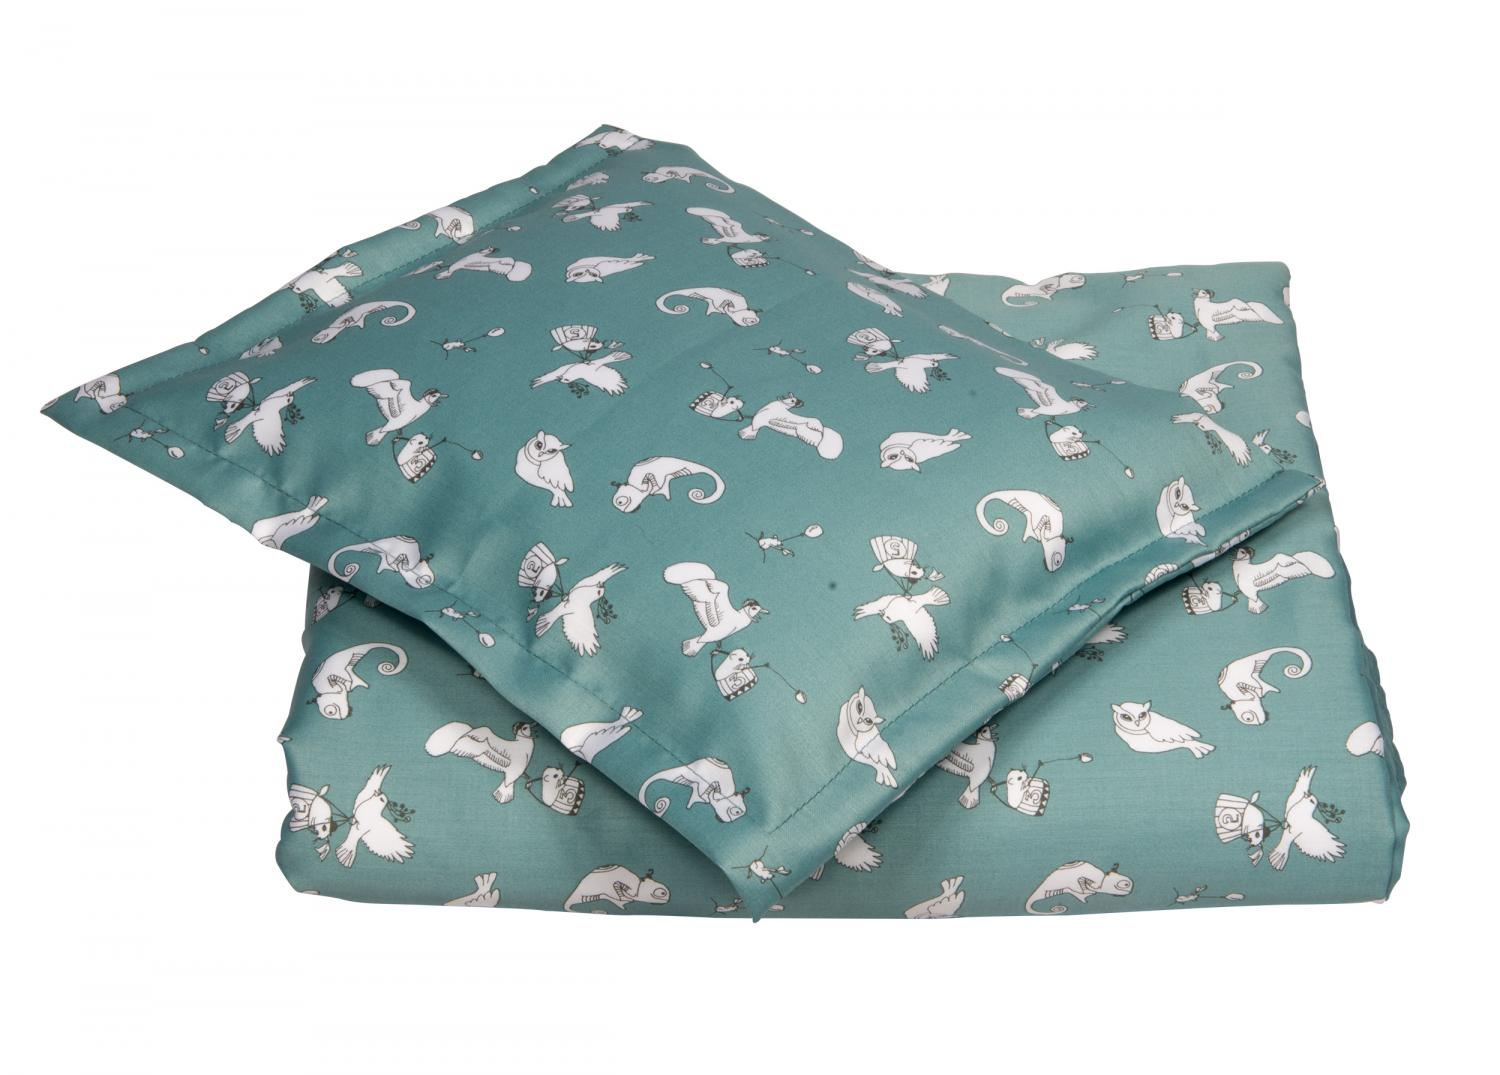 Duvet set | Fairytale petrol | Woods & Fairytales